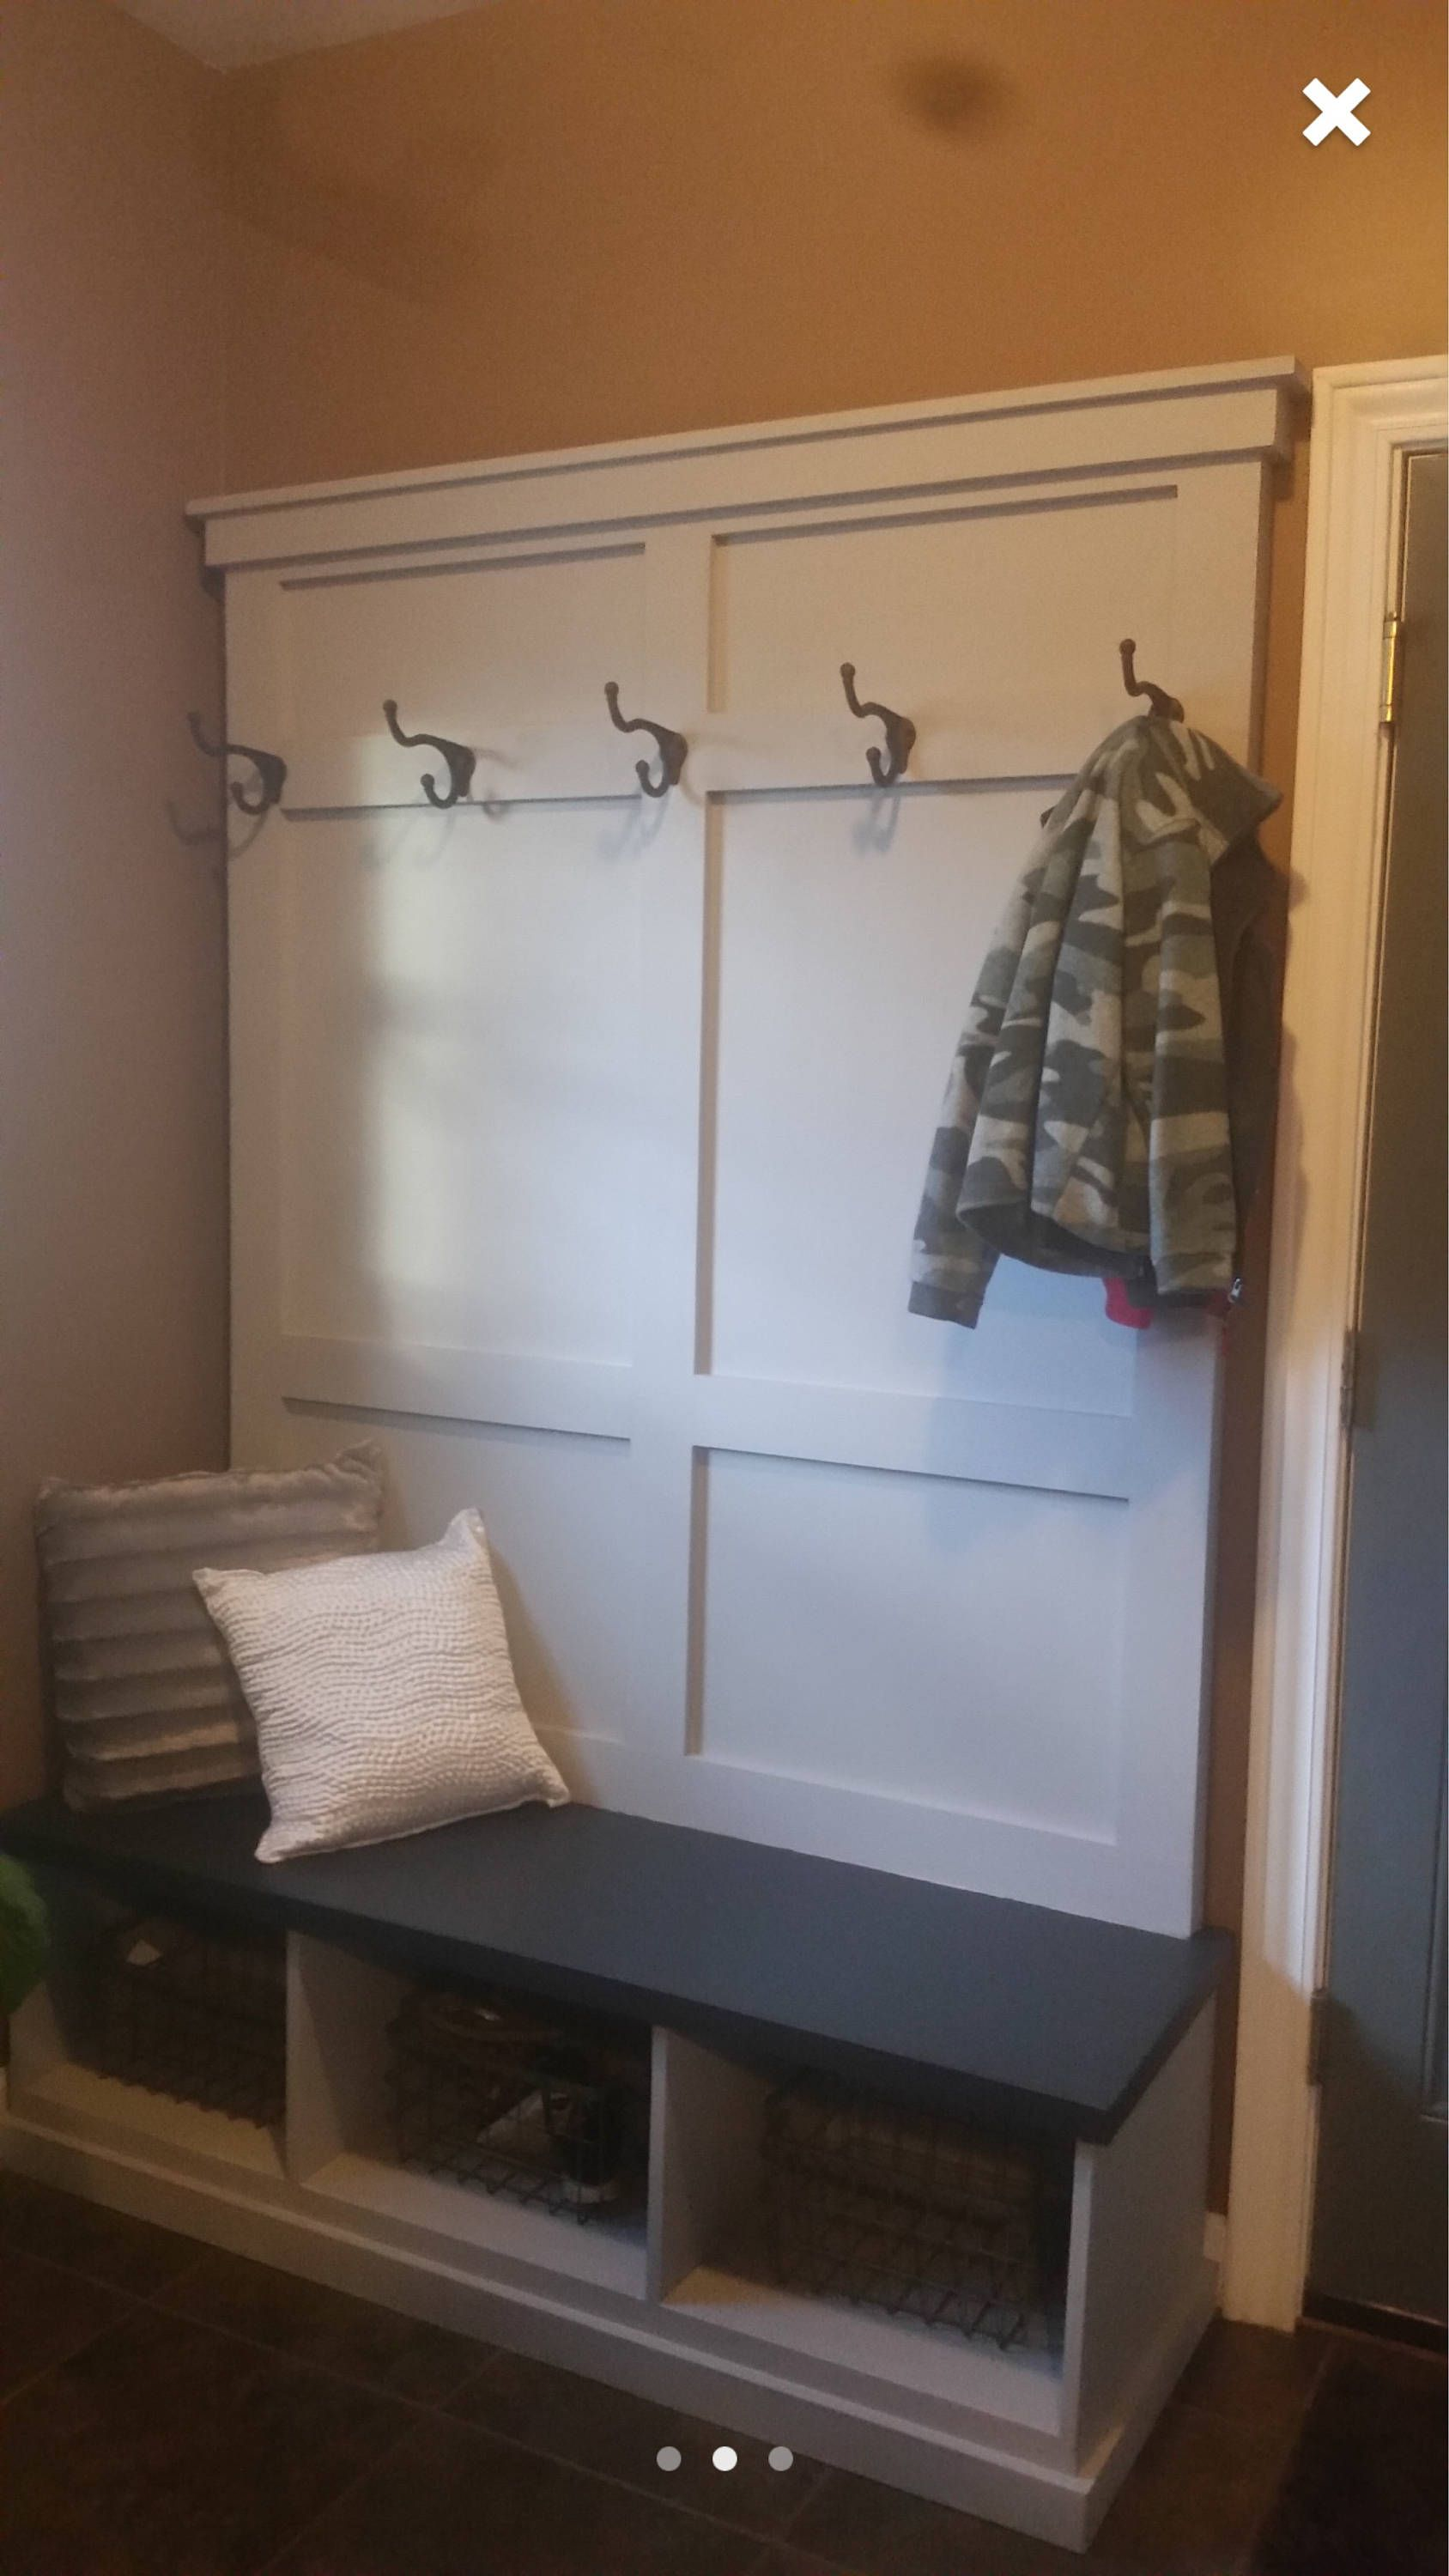 Rustic Hall Tree With Bench And Coat Rack Hooks Custom Entryway Mudroom Storage With Cubbies By Chairobsessed On E Mud Room Storage Hall Tree Rustic Hall Trees